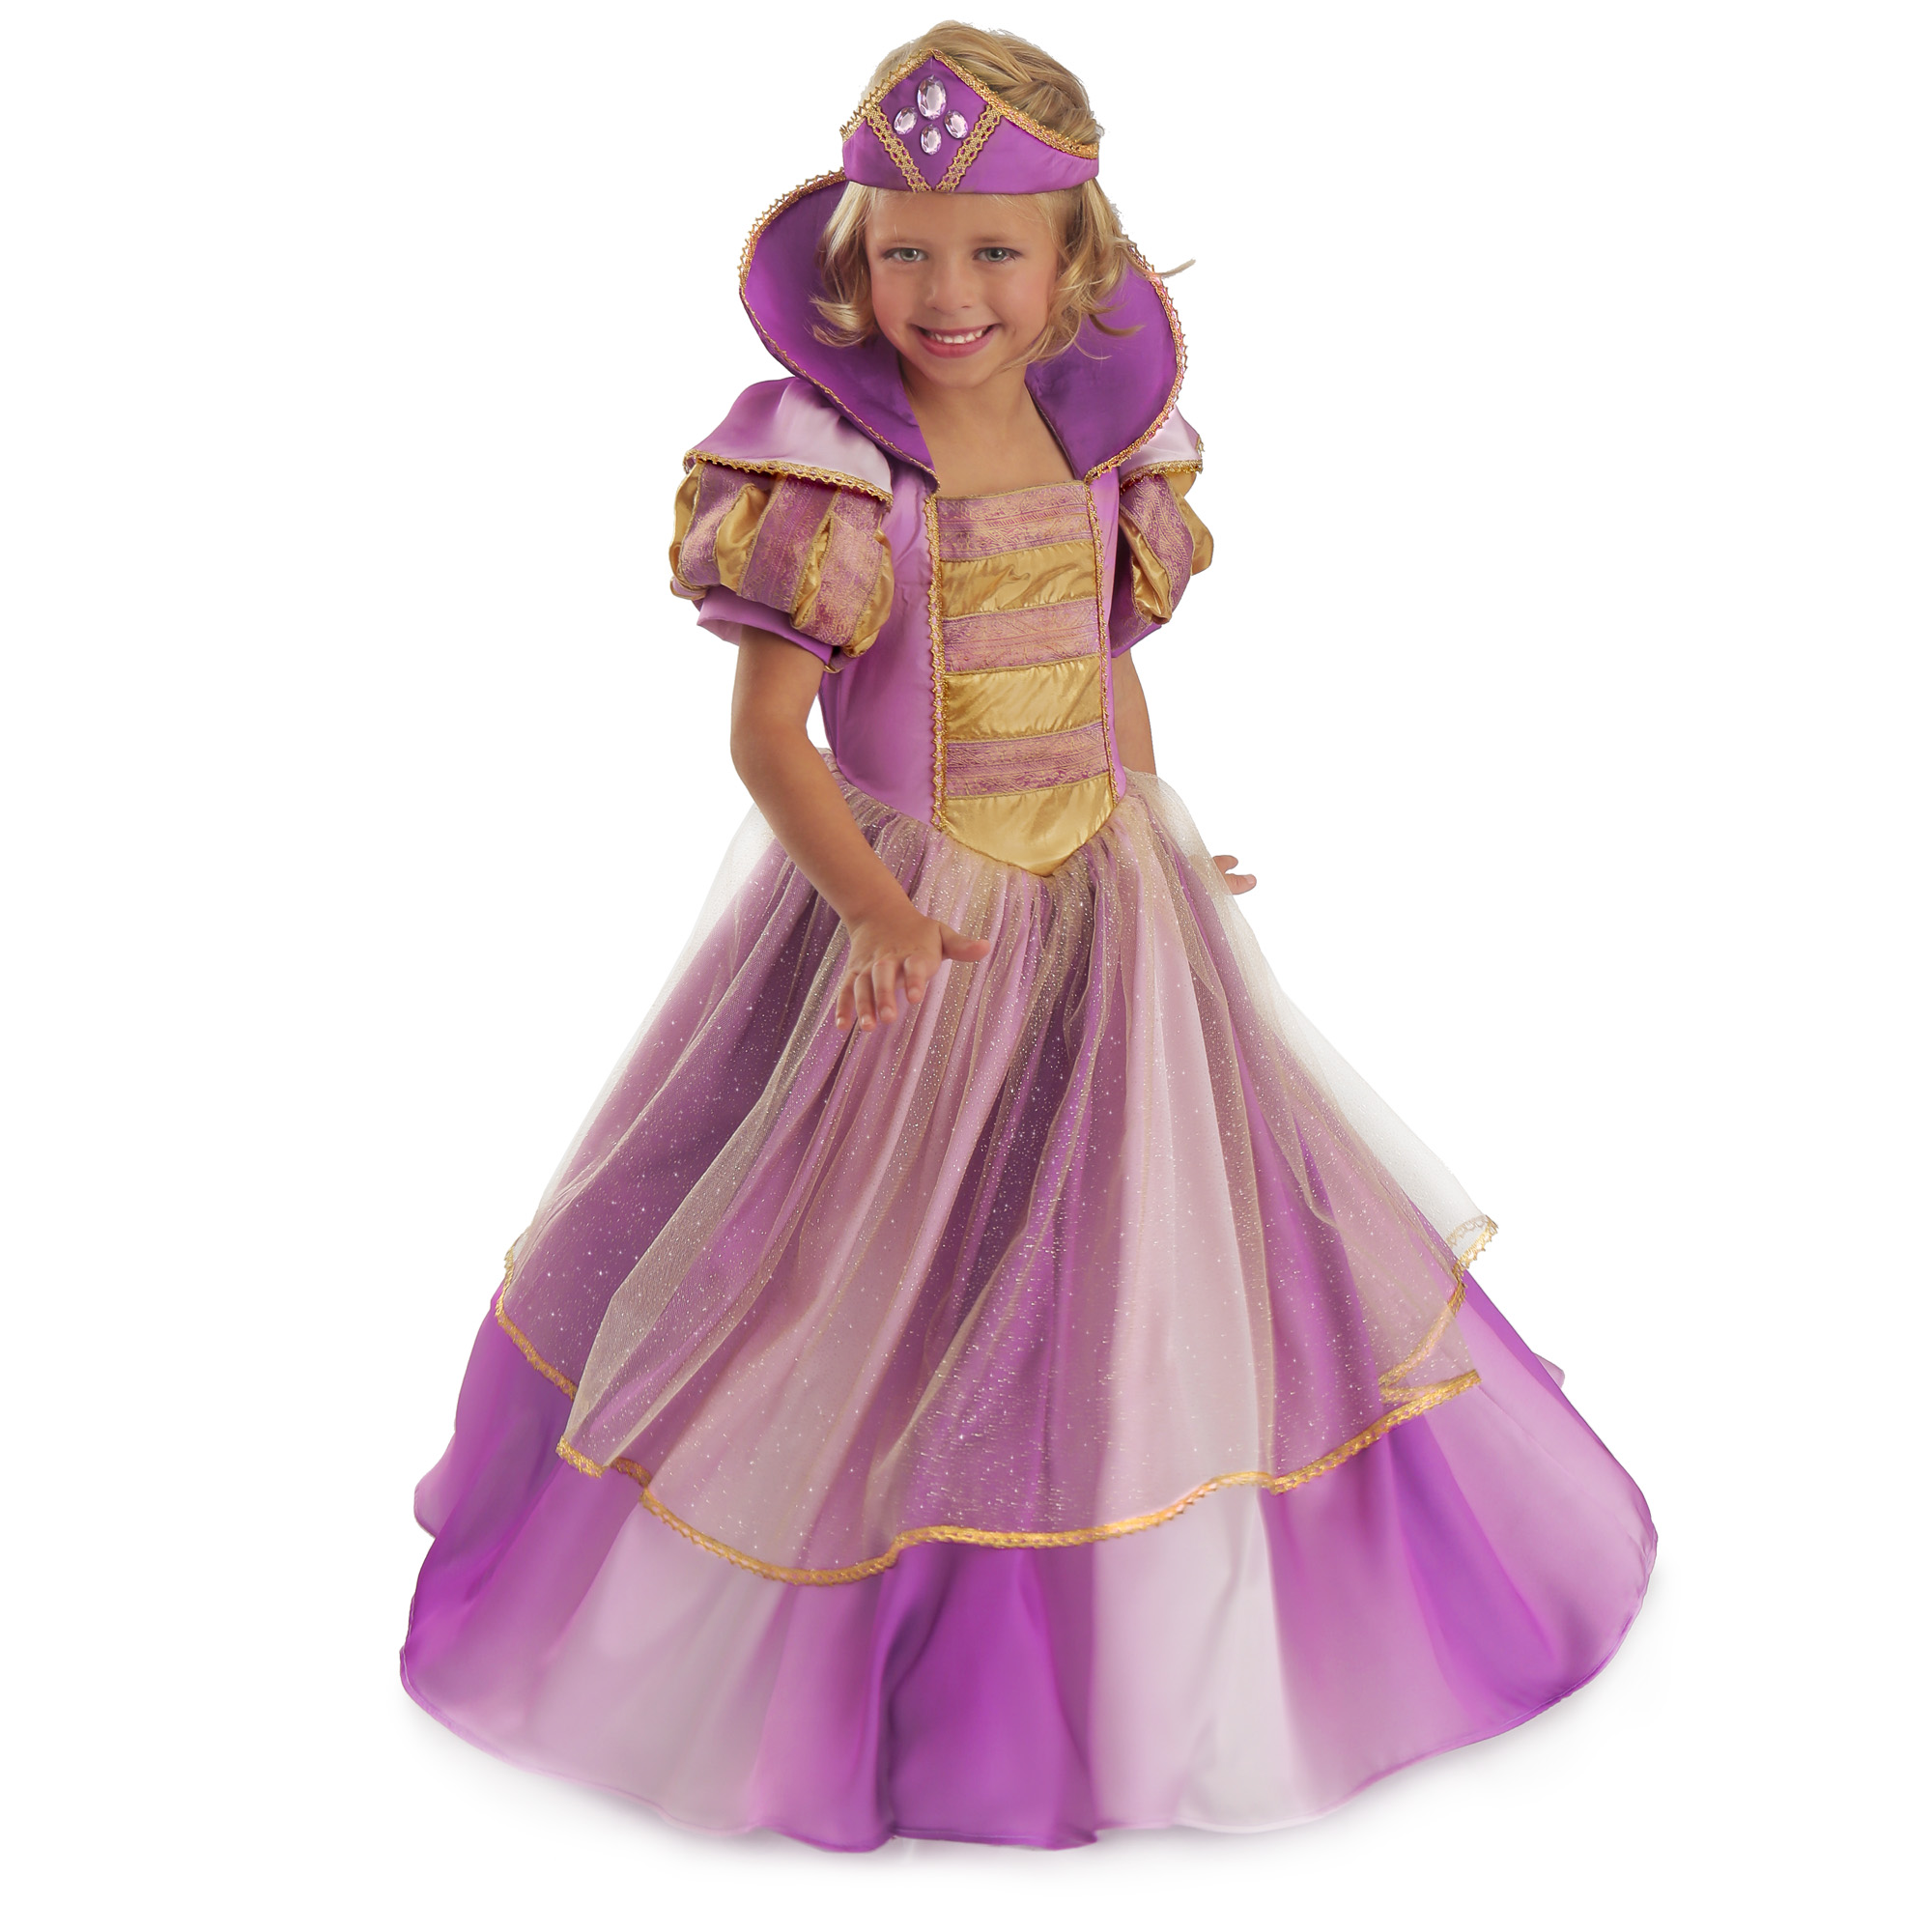 Princess Paradise Premium Princess Amanda Child Costume